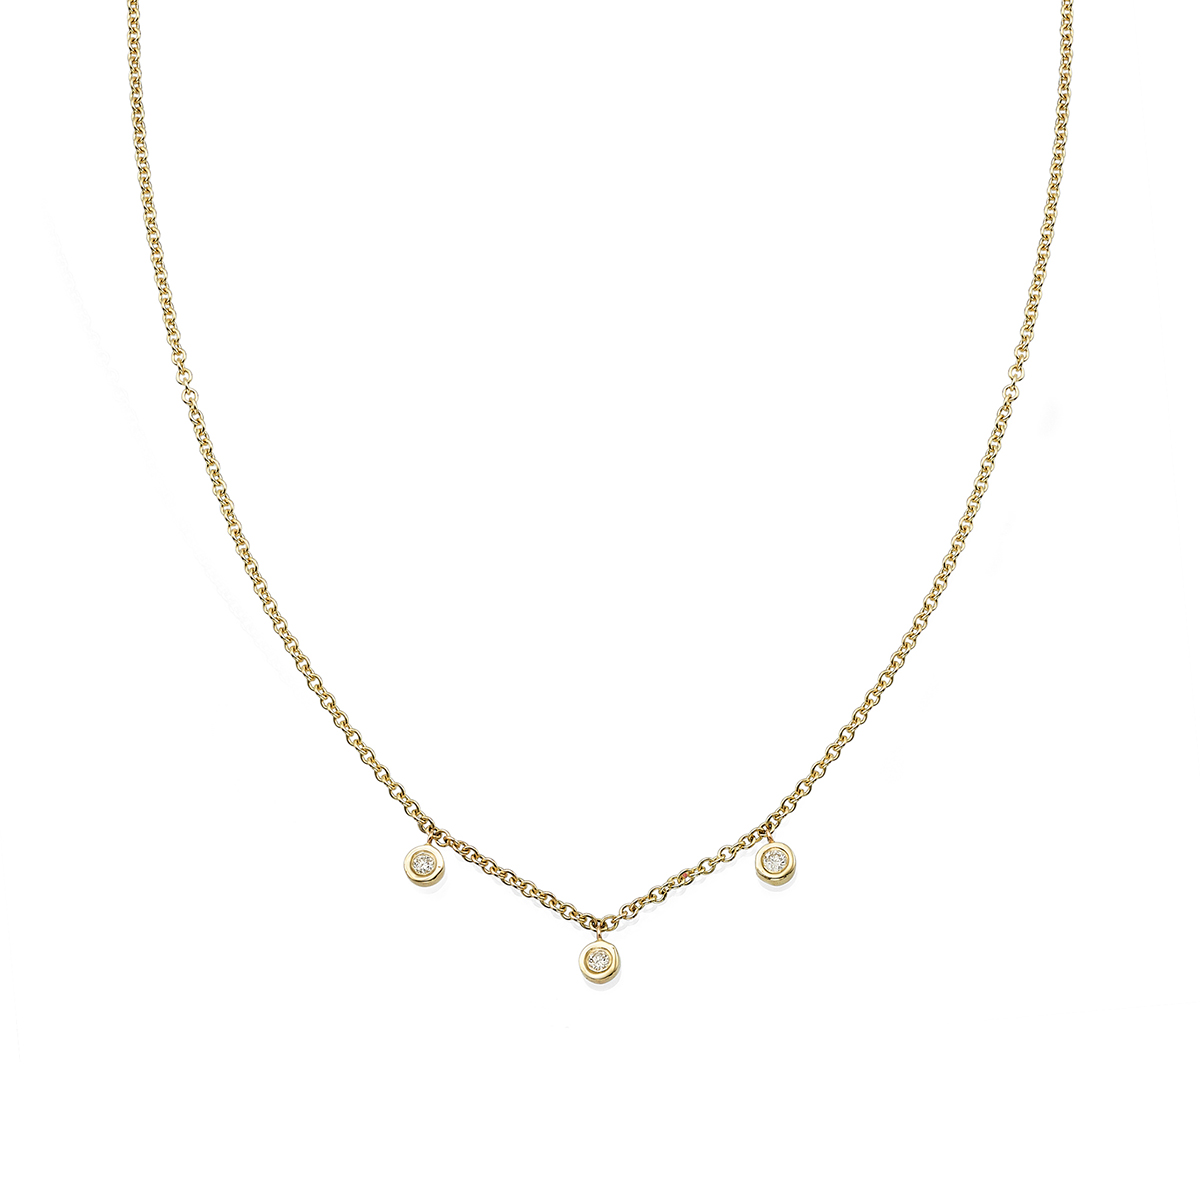 3 Diamonds Necklace